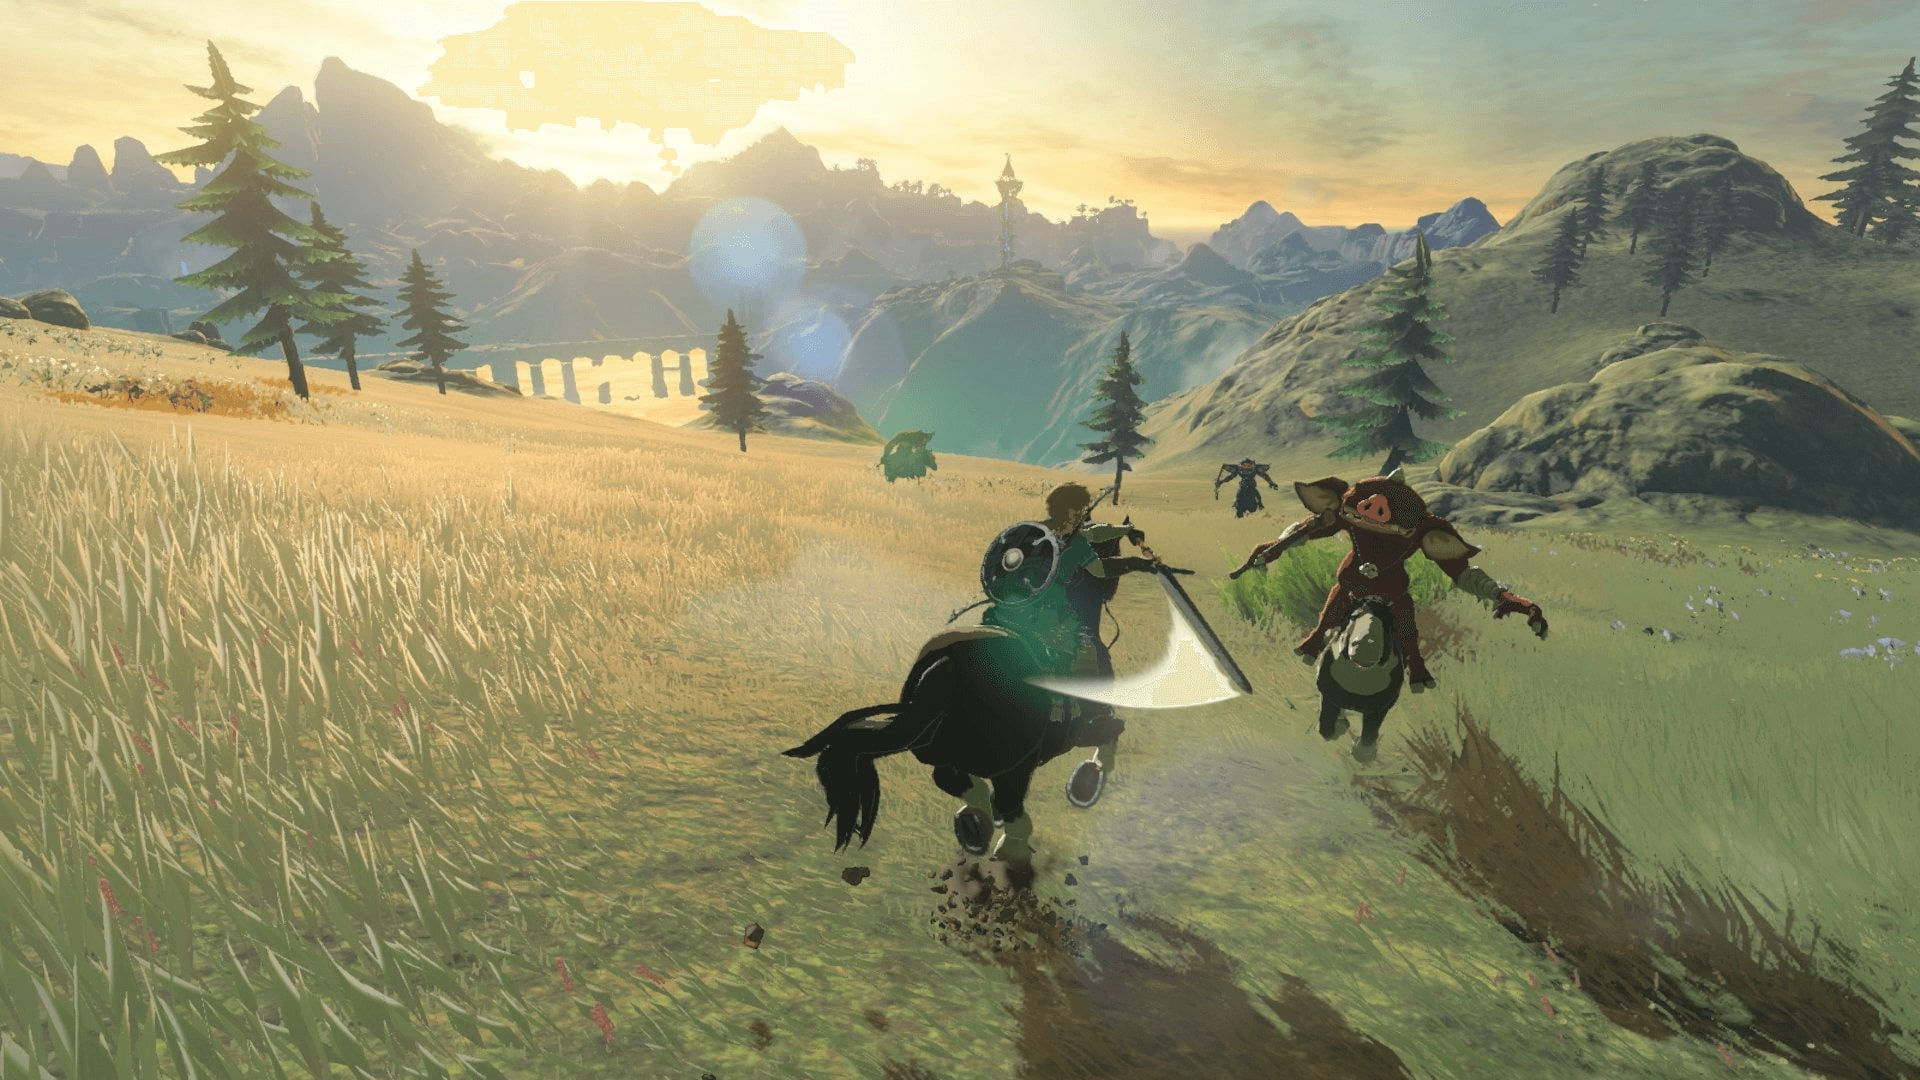 The world of the Legend of Zelda: Breath of the Wild helps the player to solve problems, but you need to learn how to interact with it